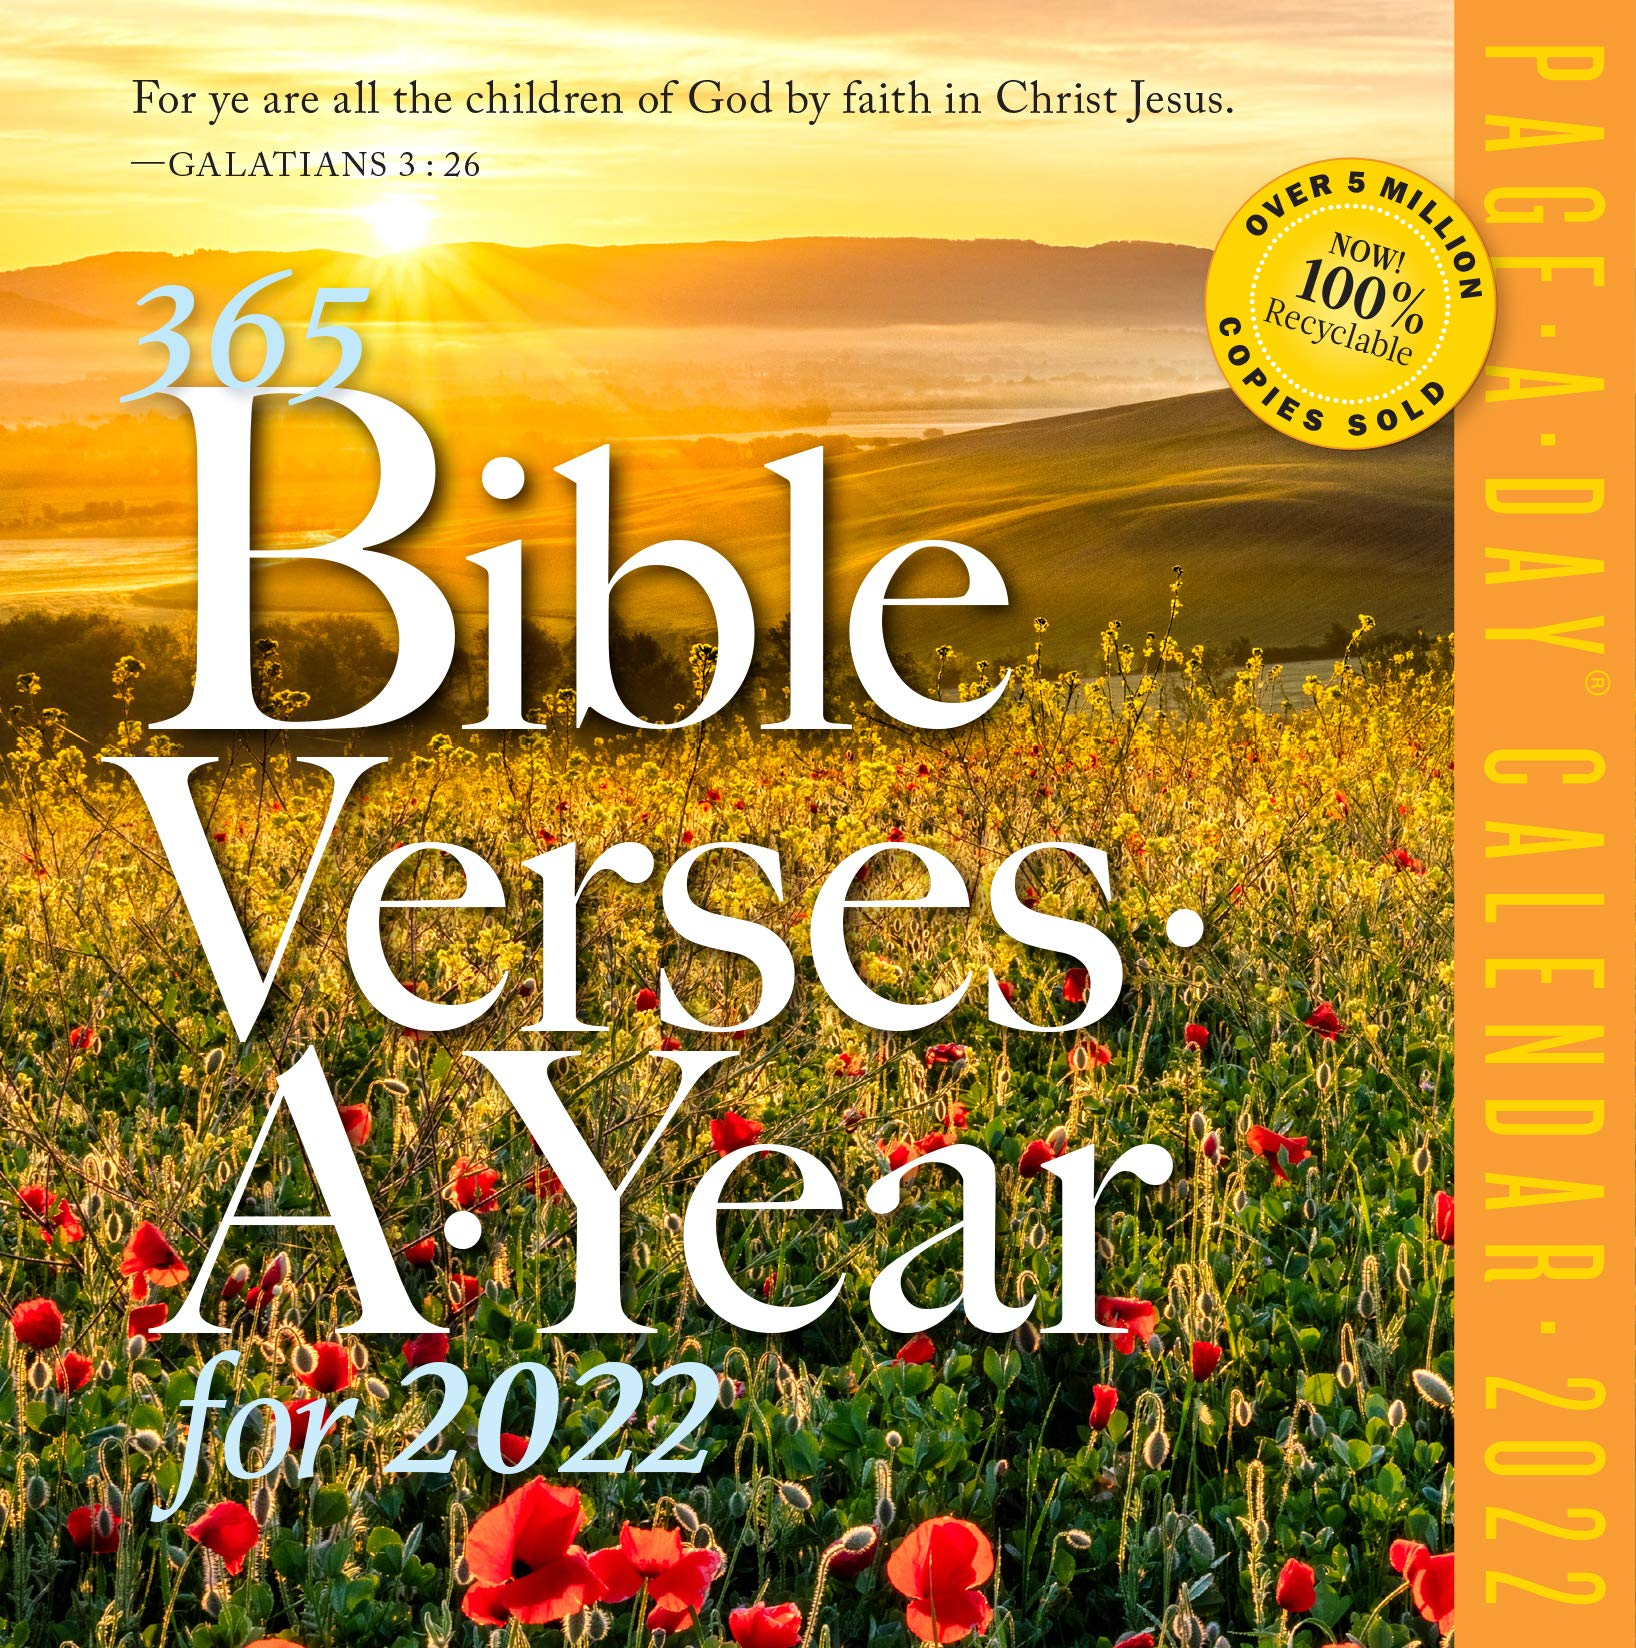 Day Of Year Calendar 2022.Buy 365 Bible Verses A Year Page A Day Calendar 2022 Book Online At Low Prices In India 365 Bible Verses A Year Page A Day Calendar 2022 Reviews Ratings Amazon In